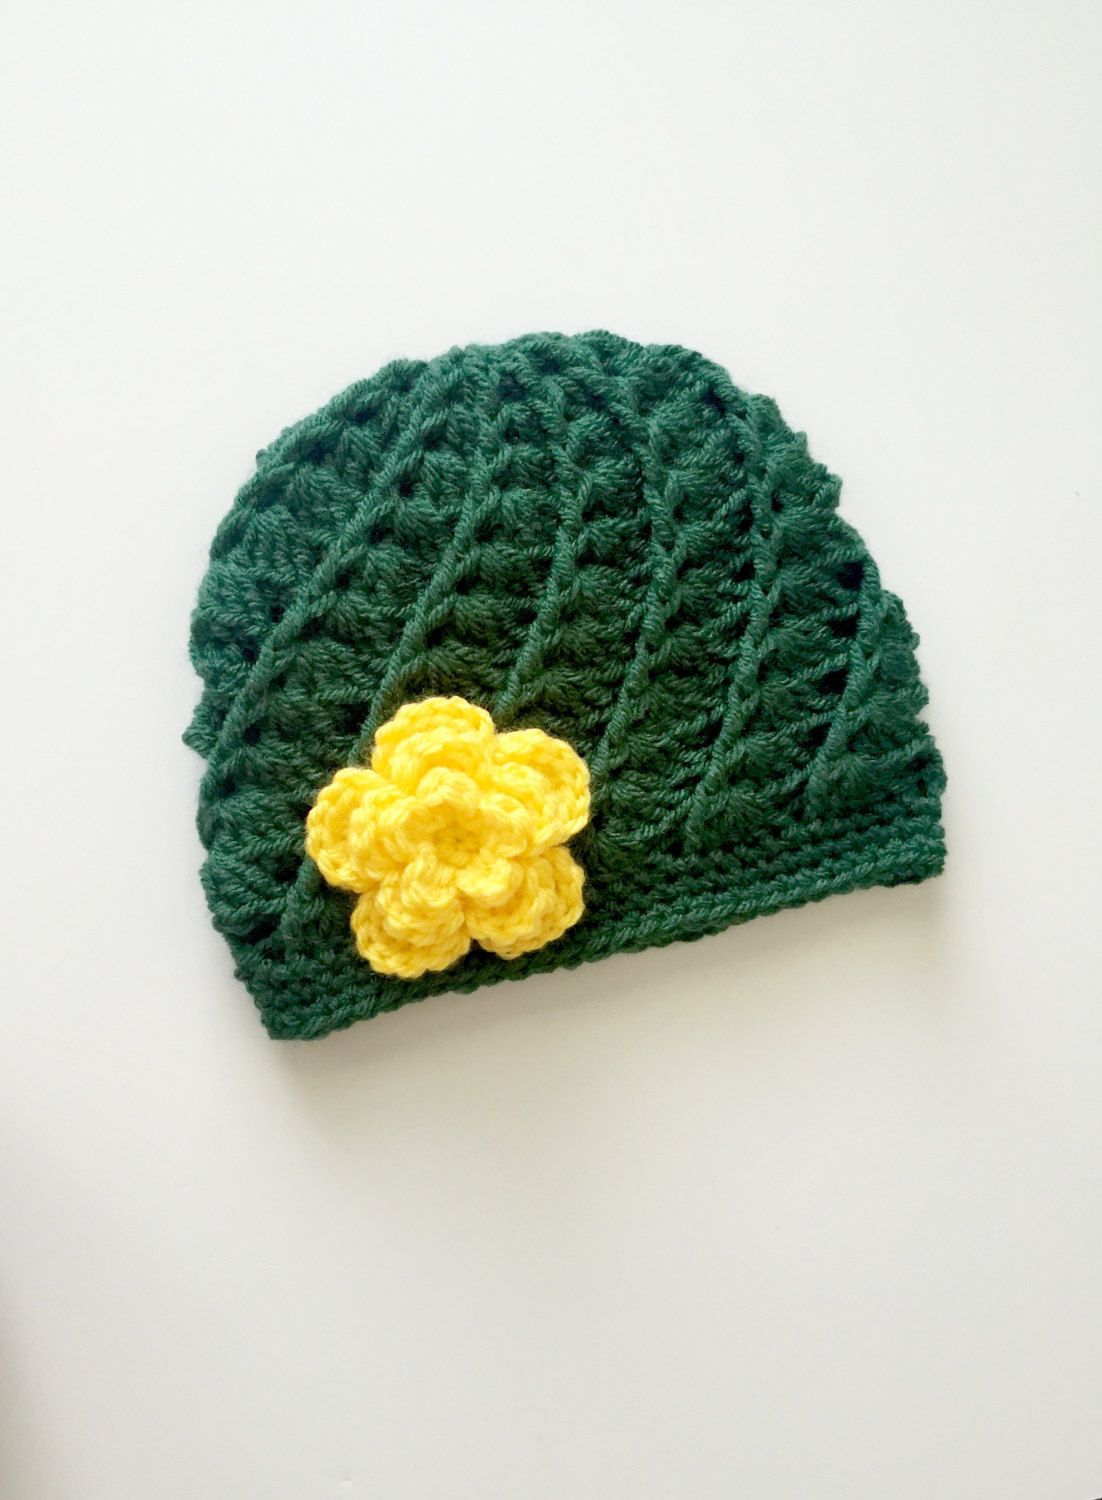 This Adorable Green Bay Packers Hat Is Made With A Soft 100 Acrylic Yarn With Crochet Flower With Pearl Securely Green Bay Packers Hat Packers Hat Baby Hats